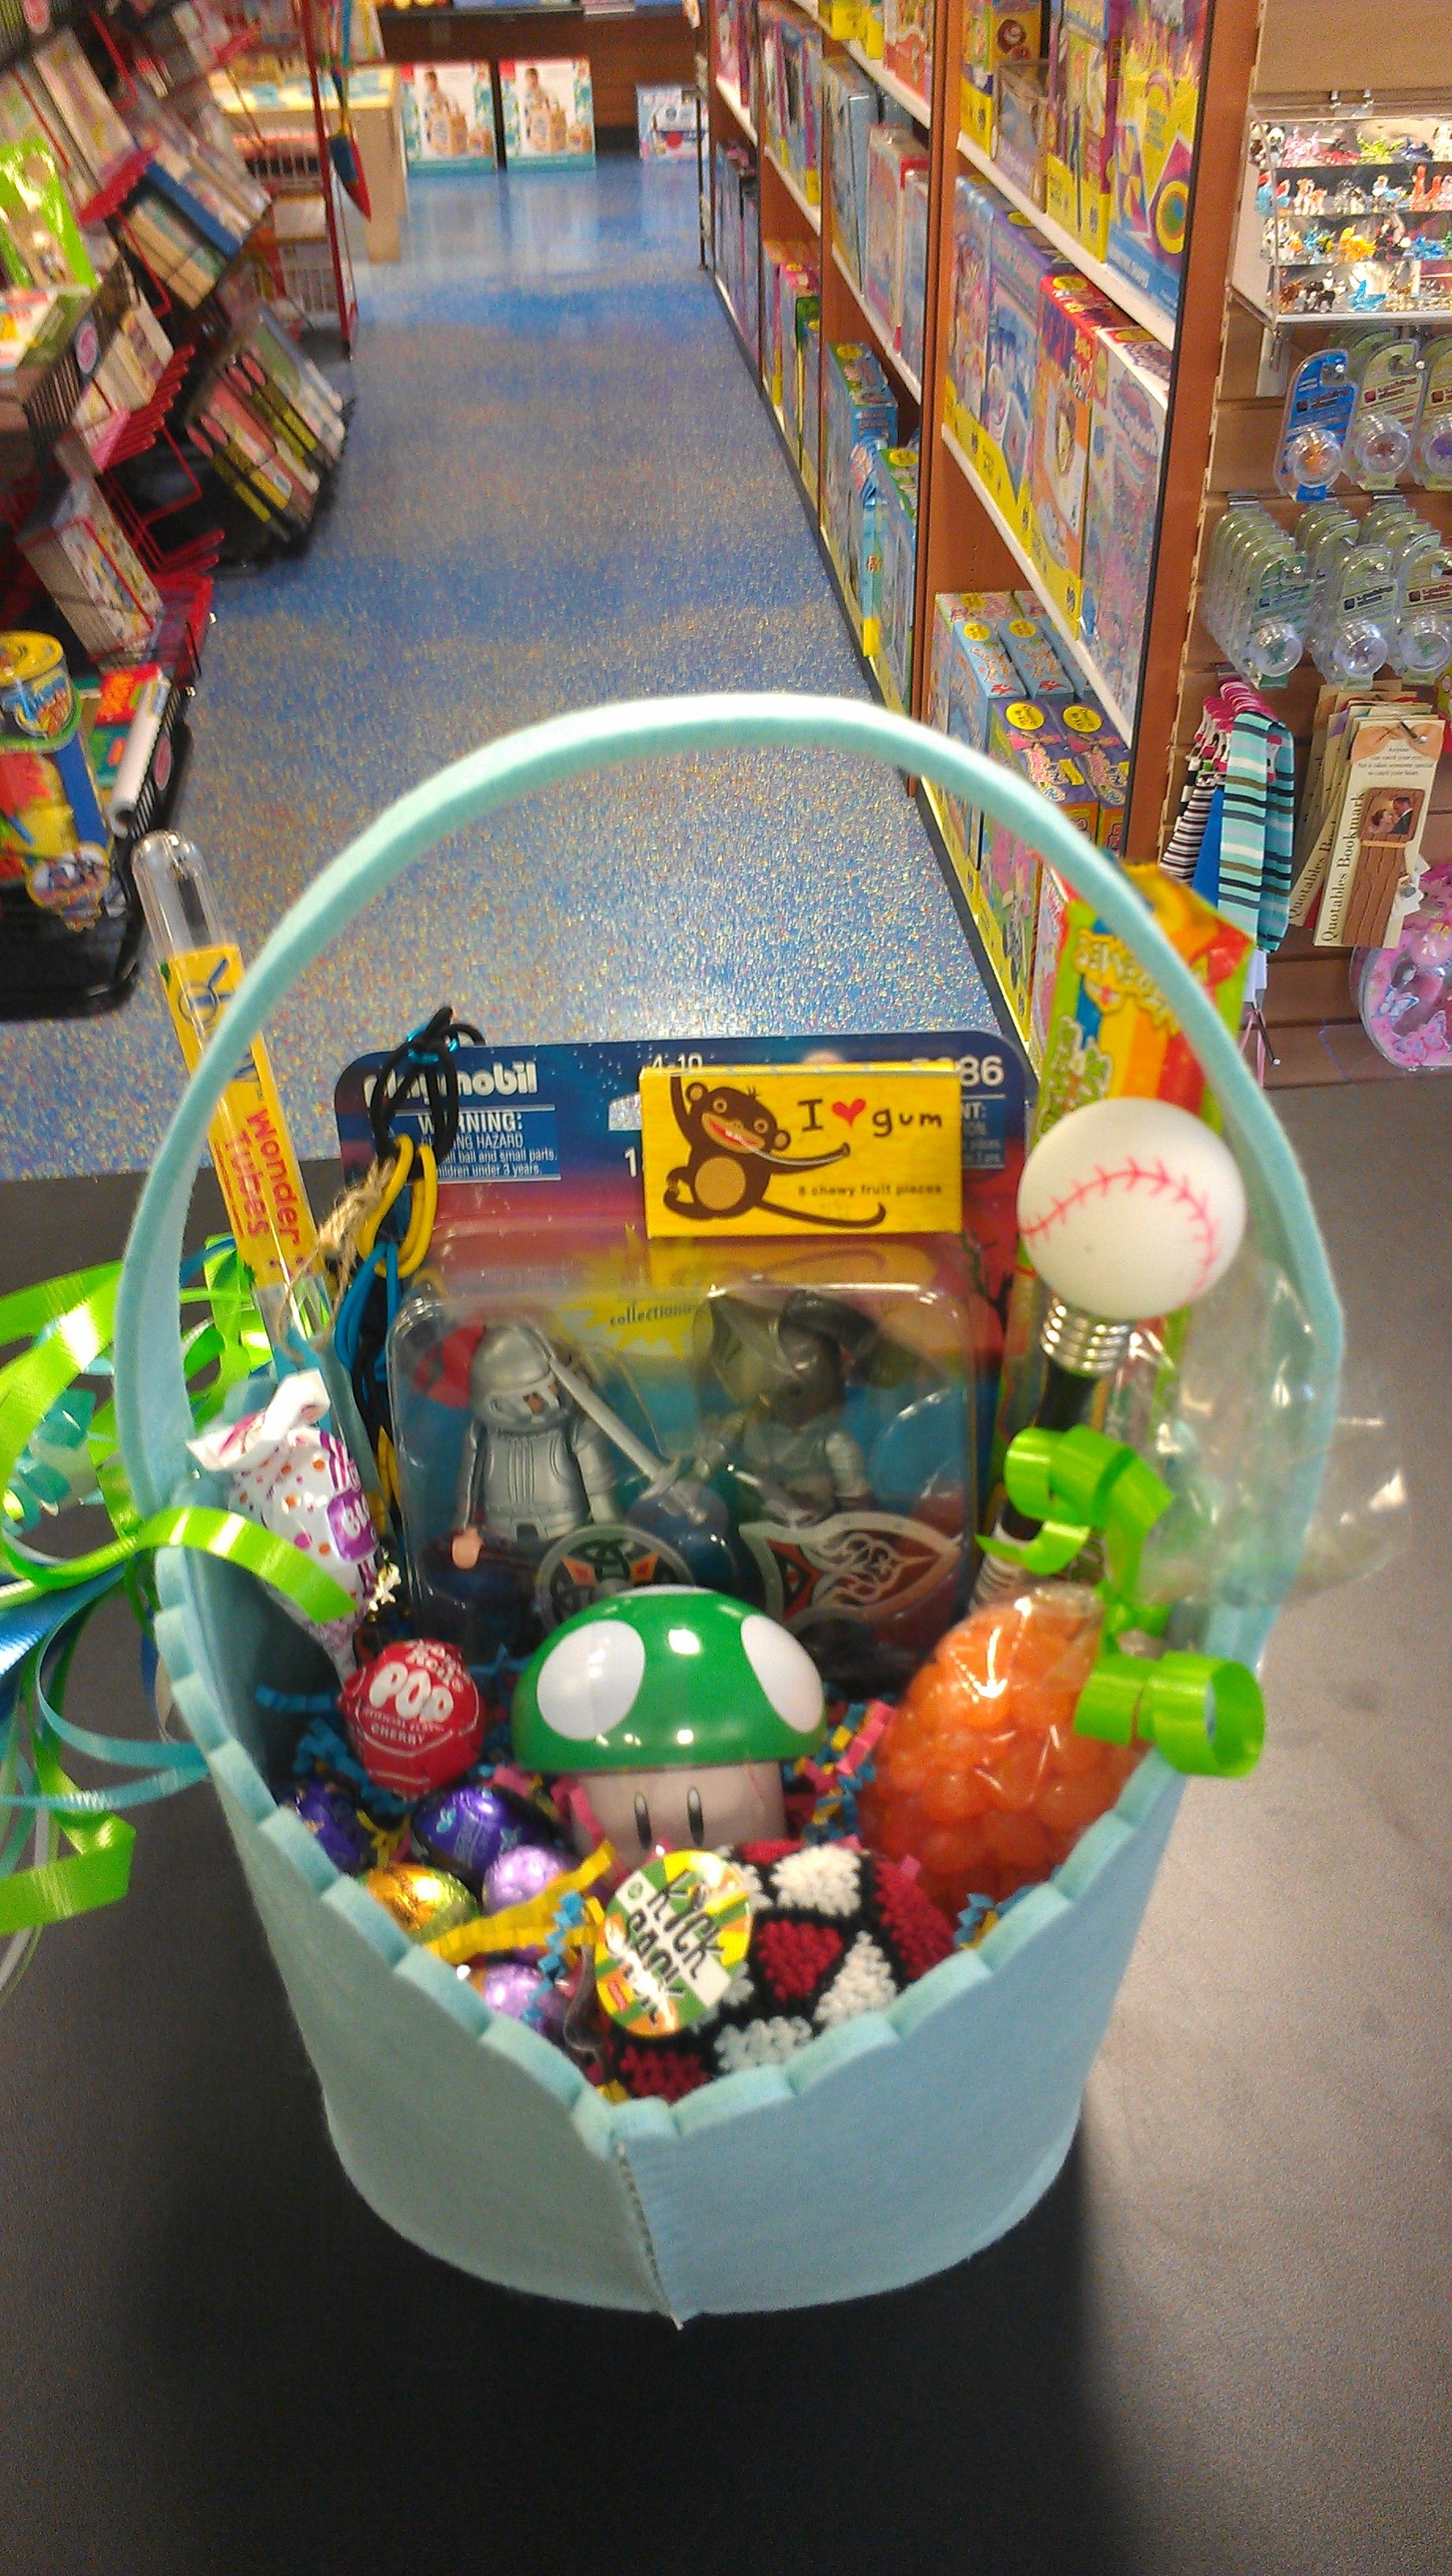 Easter baskets for boys and girls and moms and dads of all ages easter baskets for boys and girls and moms and dads of all ages negle Image collections